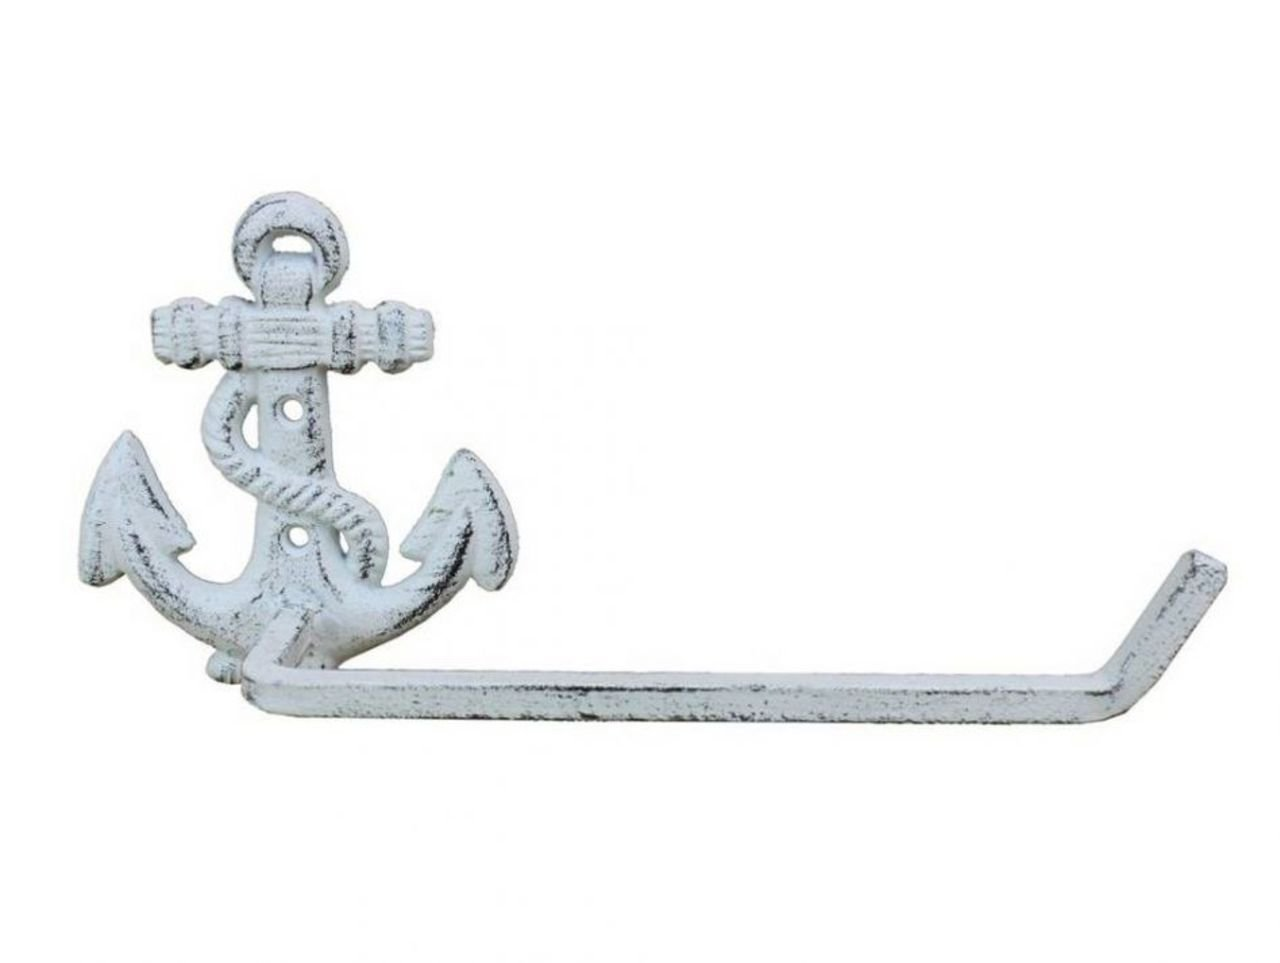 Hampton Nautical K-9210-w Whitewashed Cast Iron Anchor Toilet Paper Holder 10'' - Beach Bathroom Decoration - Beach Home Decorating by Hampton Nautical